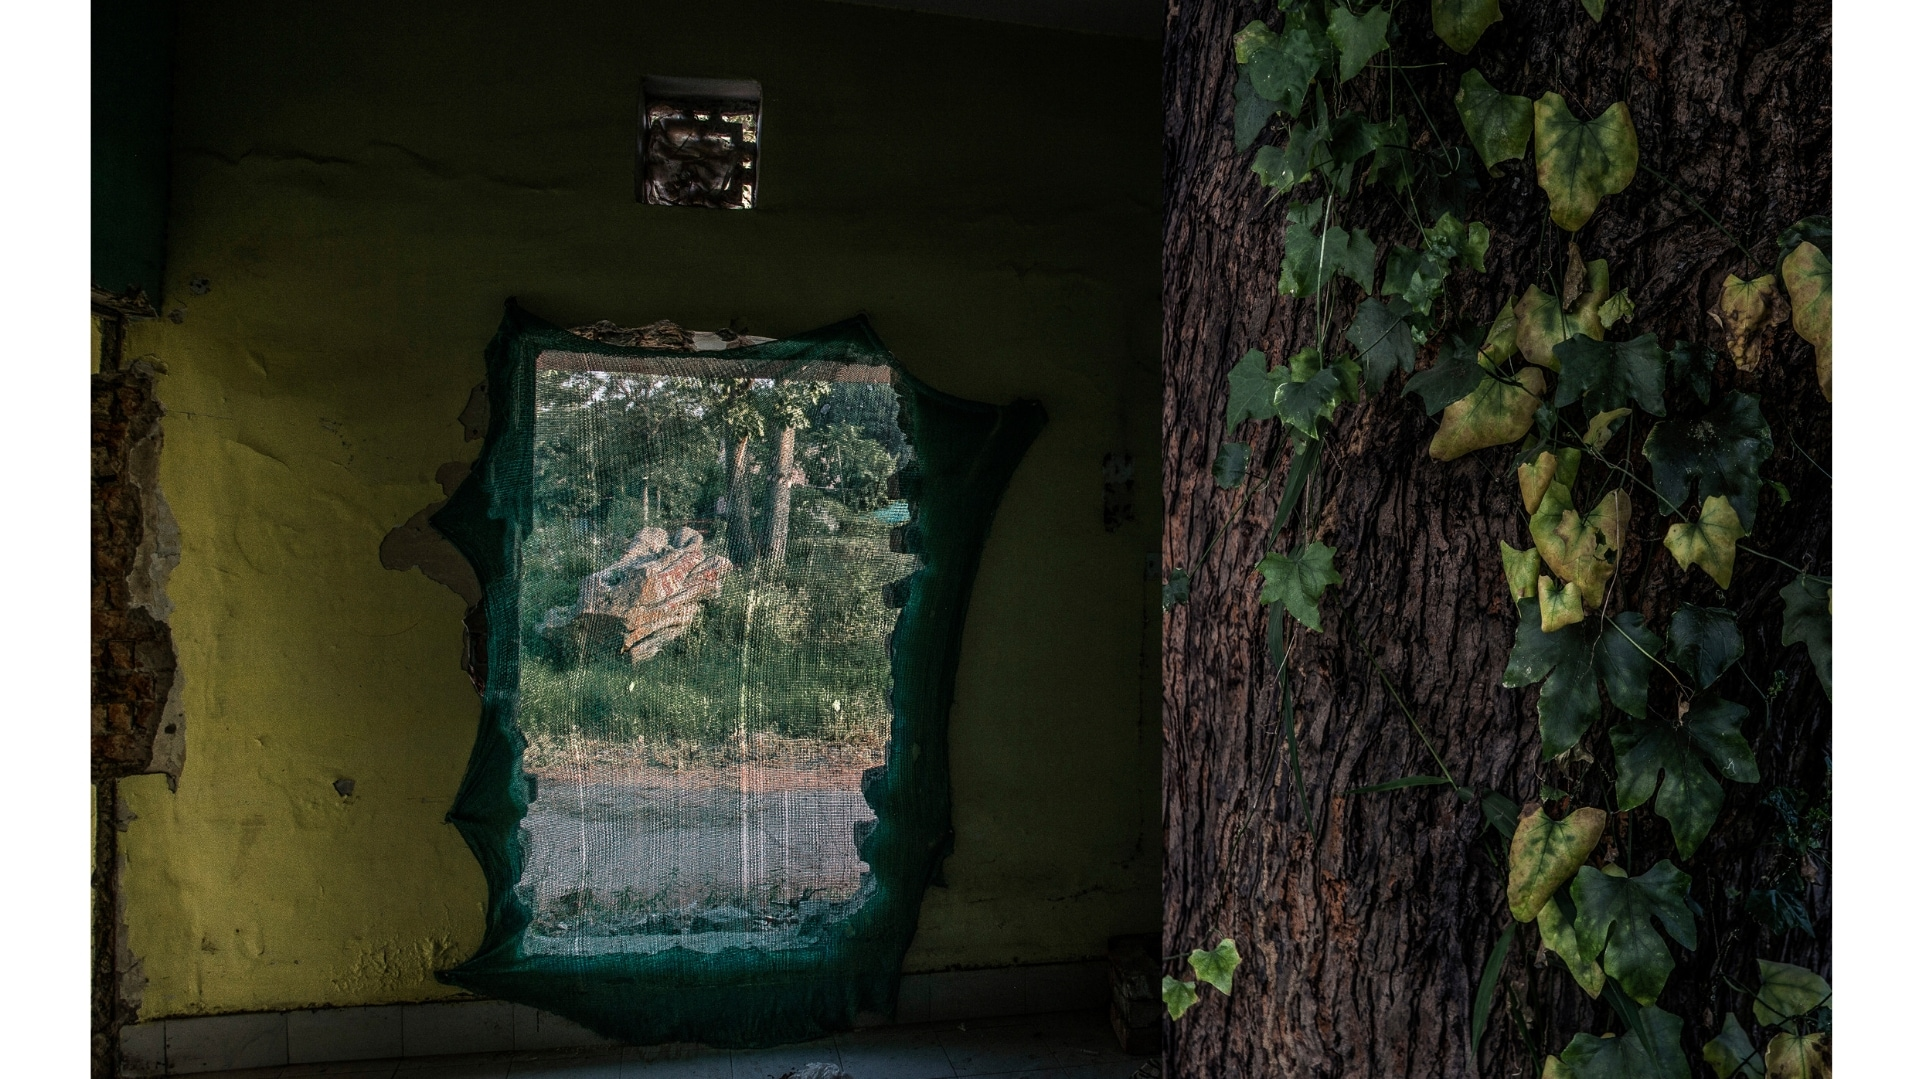 Human/Nature: In photos of trees and crumbling houses, a criticism of modern development - Firstpost